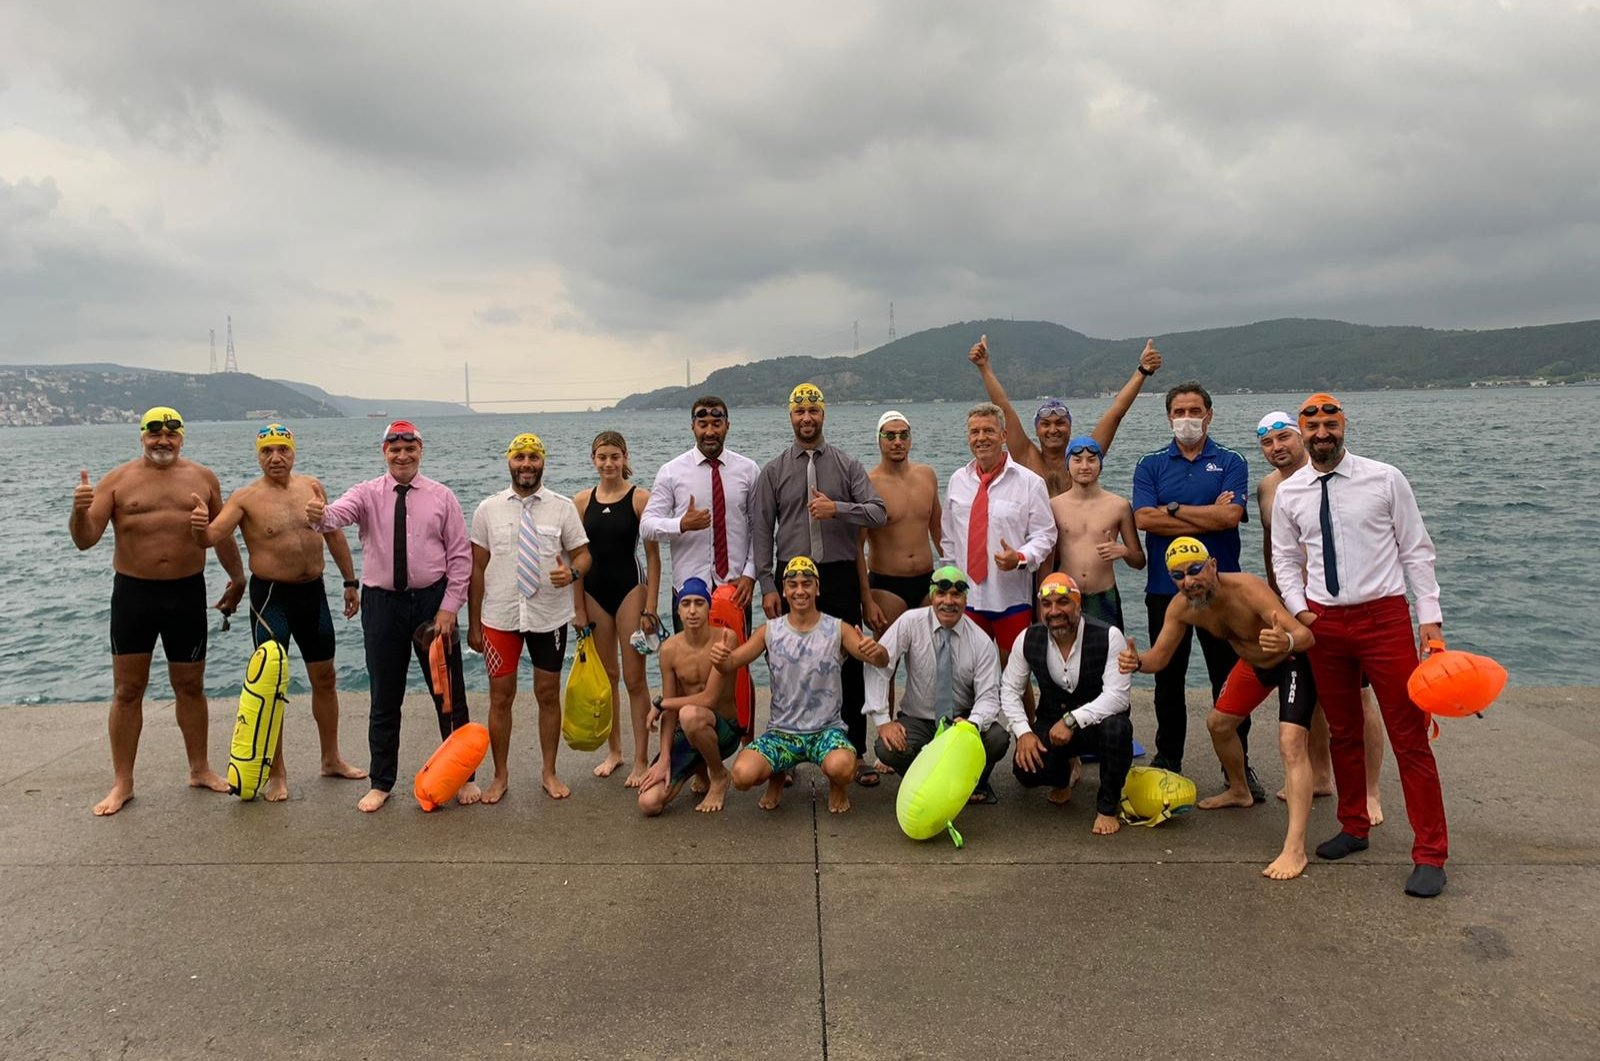 """The """"Masters of Bosporus"""" swimming group poses for a photo before their swim in the Bosporus, Istanbul, Turkey, Sept. 13, 2020. (DHA Photo)"""